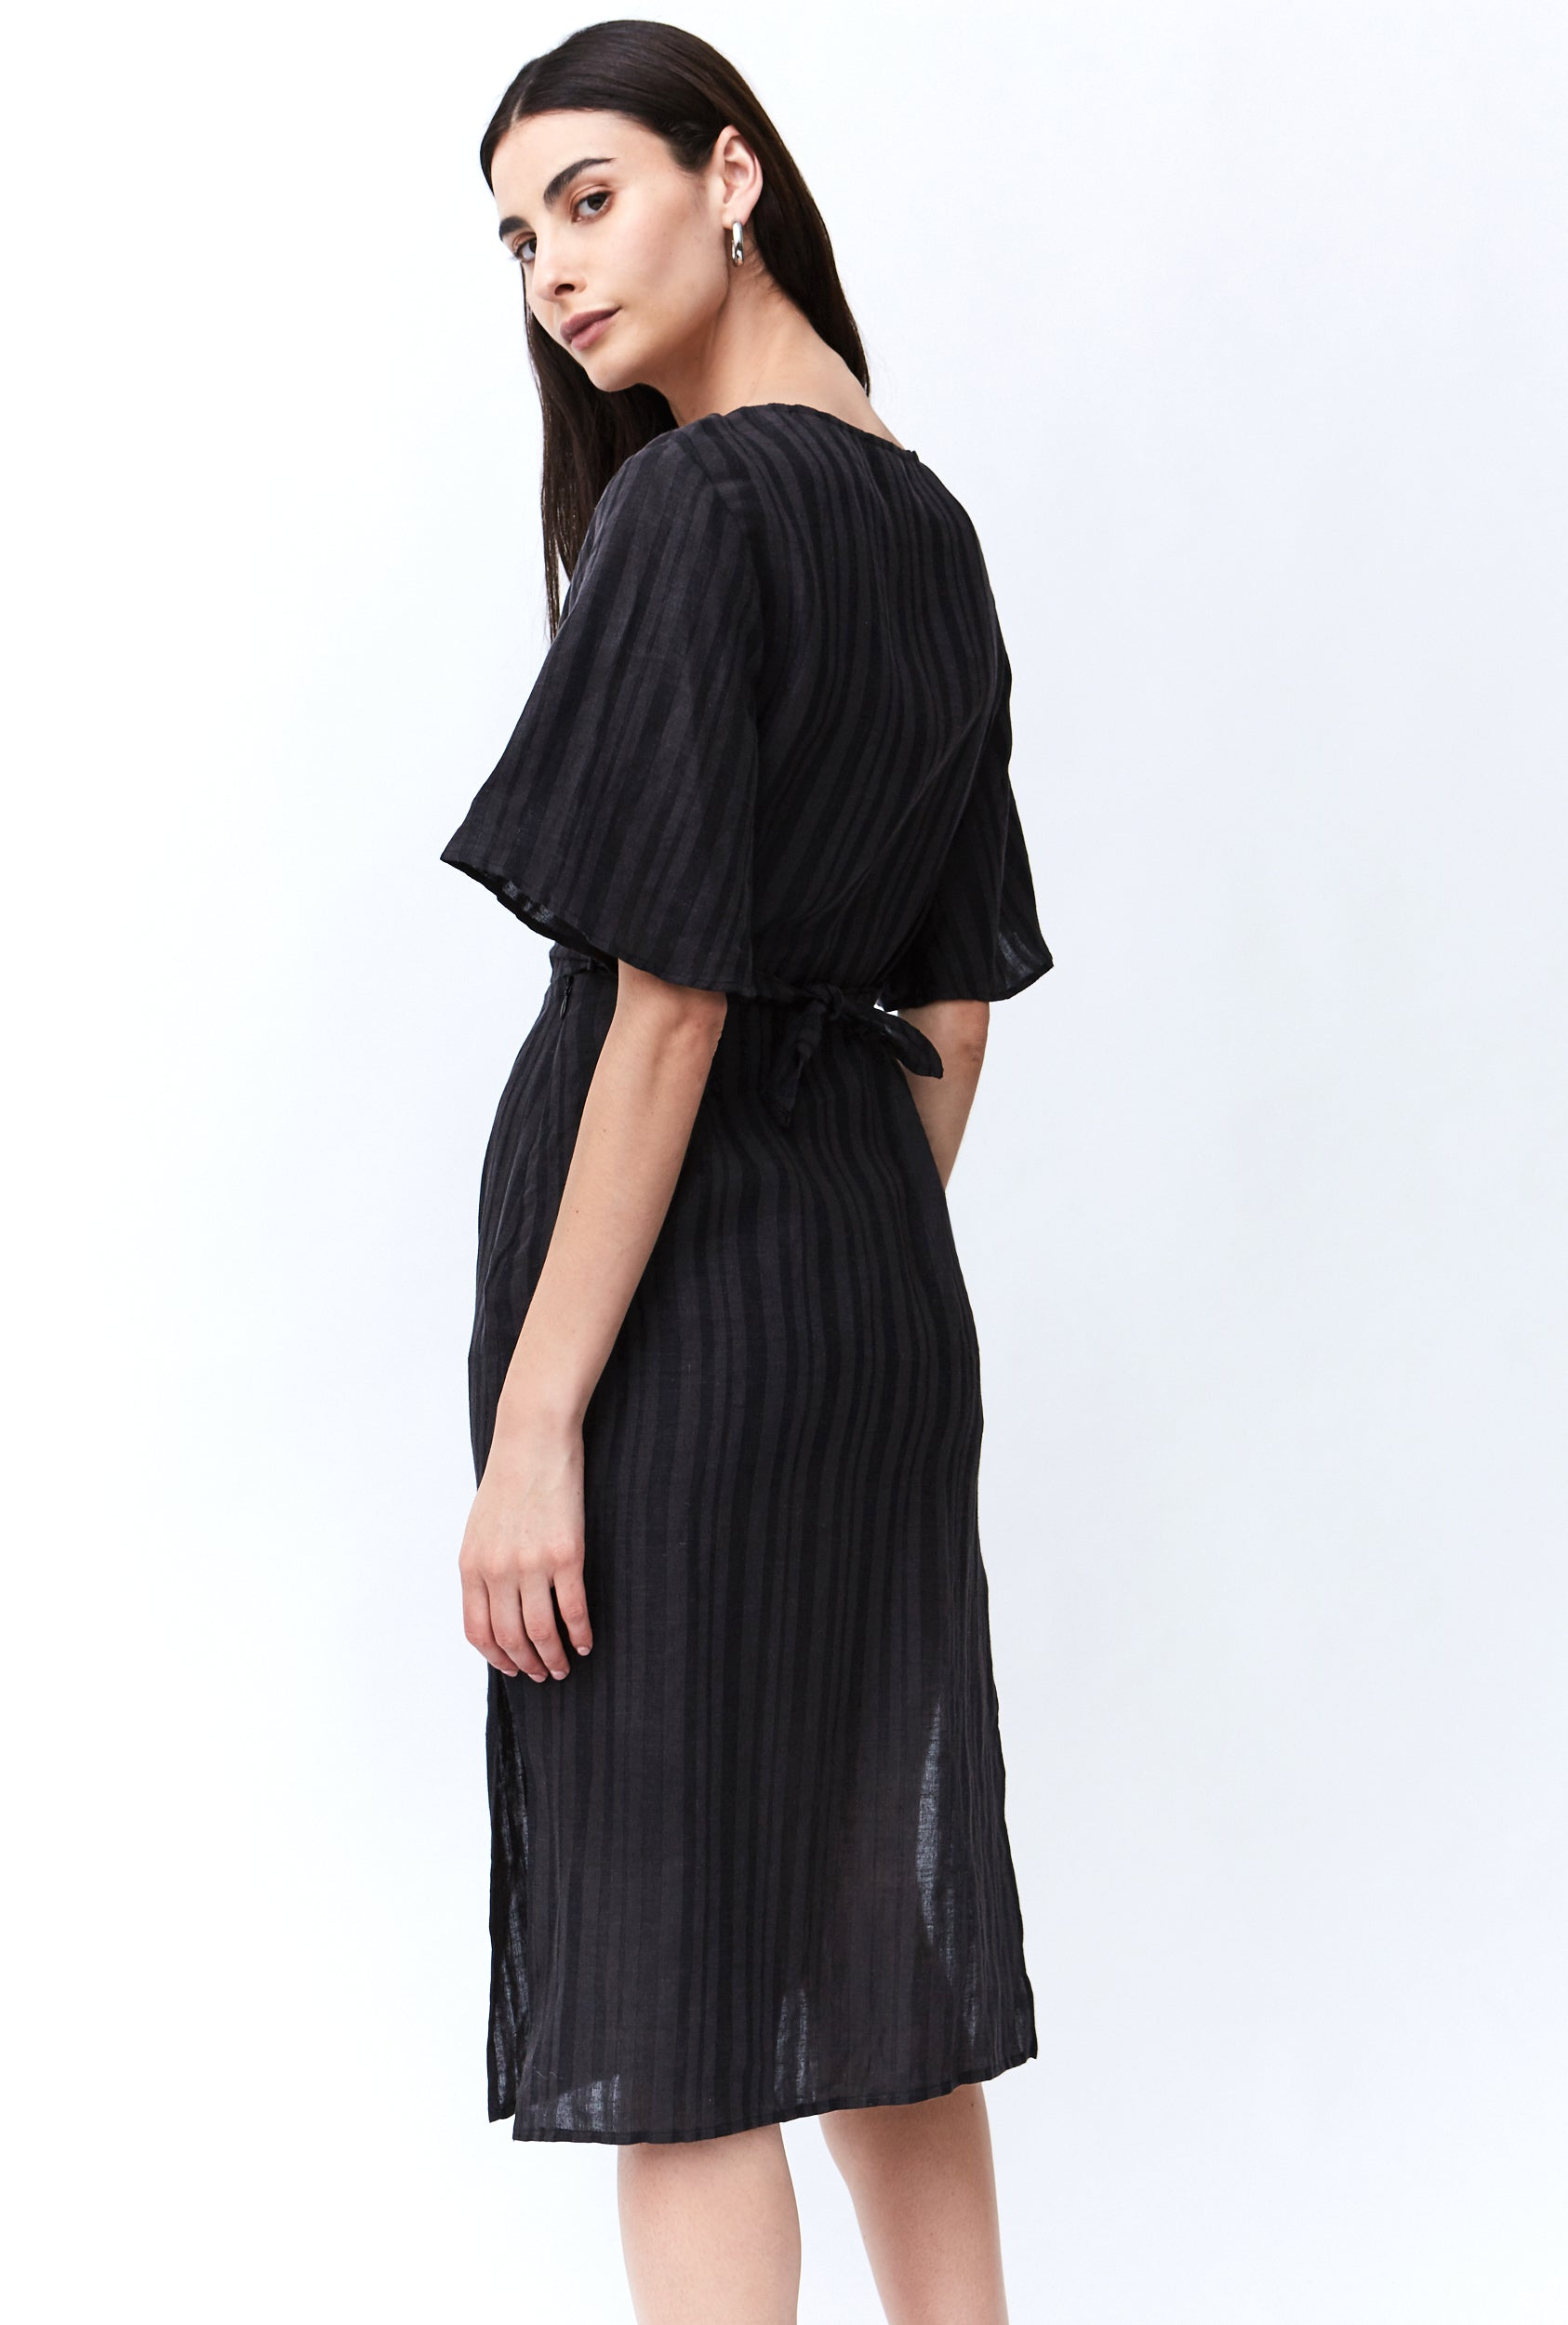 SENRO WRAP MIDI DRESS | CHARCOAL STRIPE